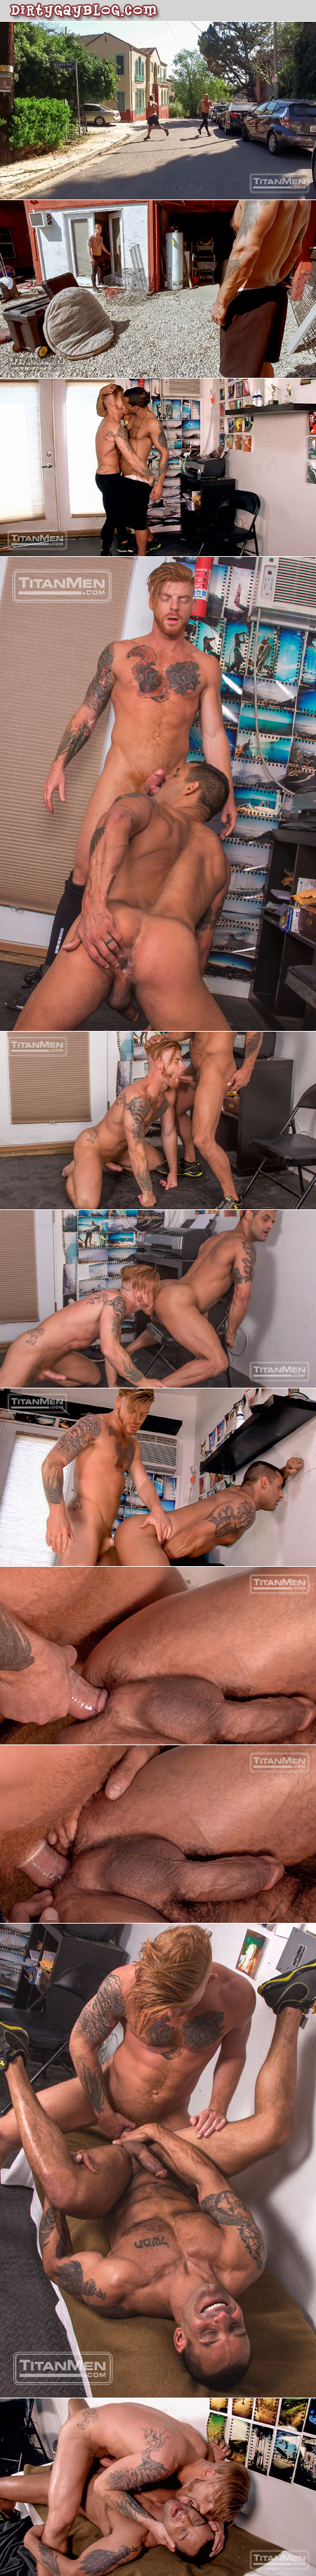 Muscular redhead fucking a hunky athlete he picked up during his run.